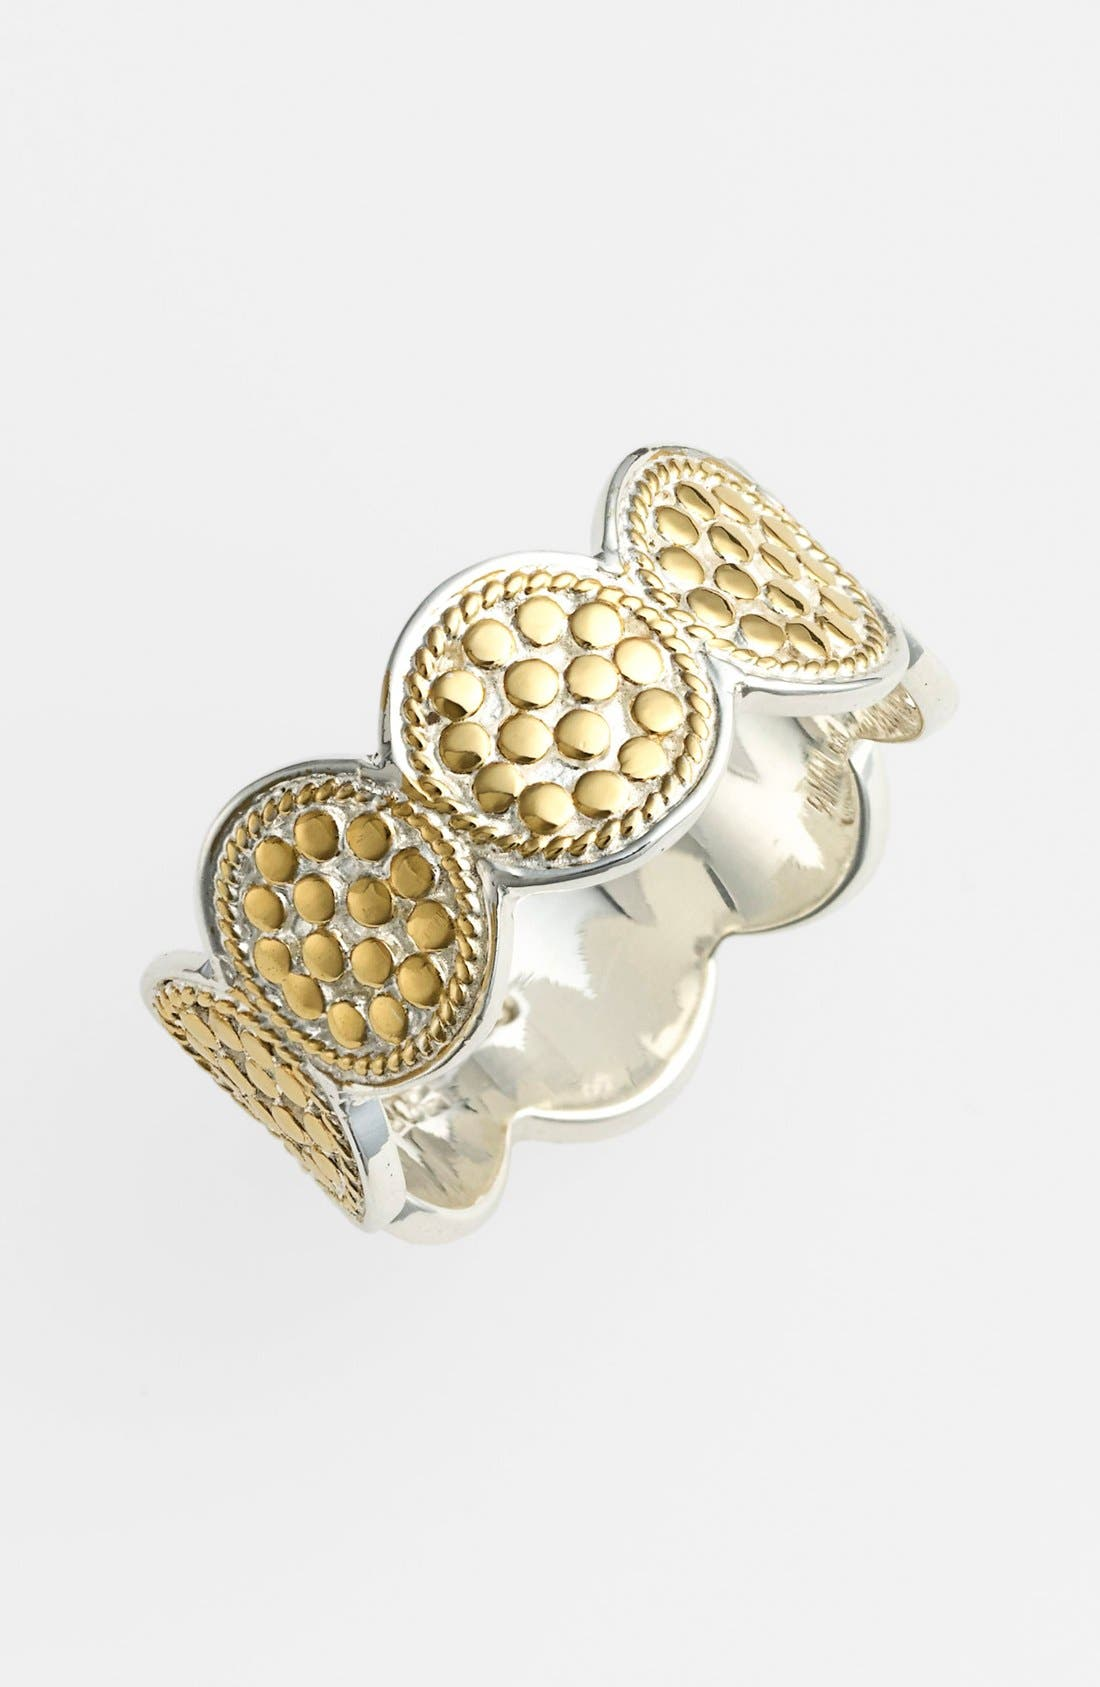 Alternate Image 1 Selected - Anna Beck 'Gili' Wire Rimmed Disc Band Ring